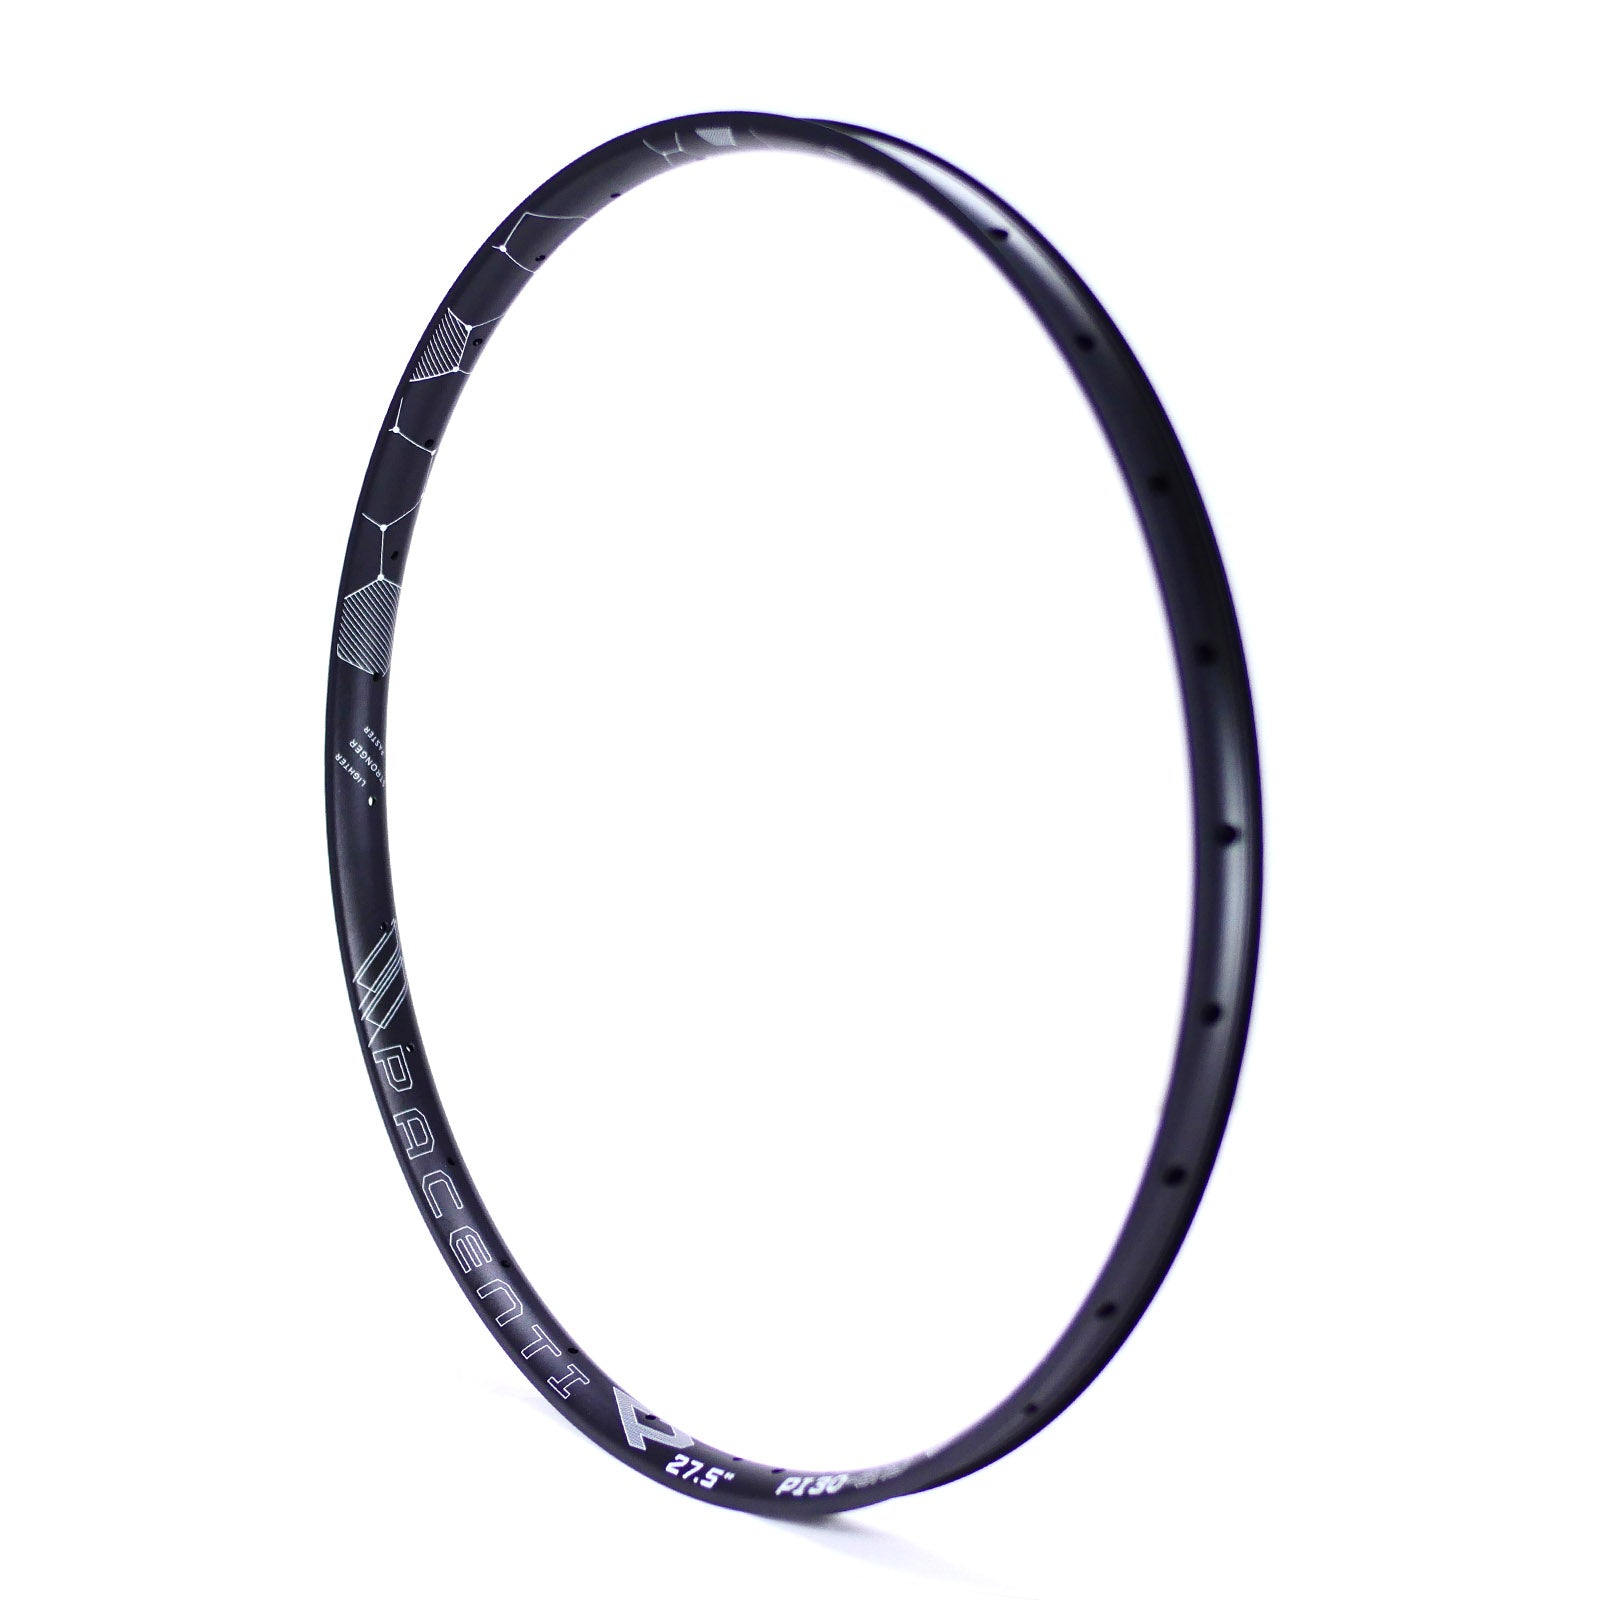 PI30-END Enduro trail rim 27.5